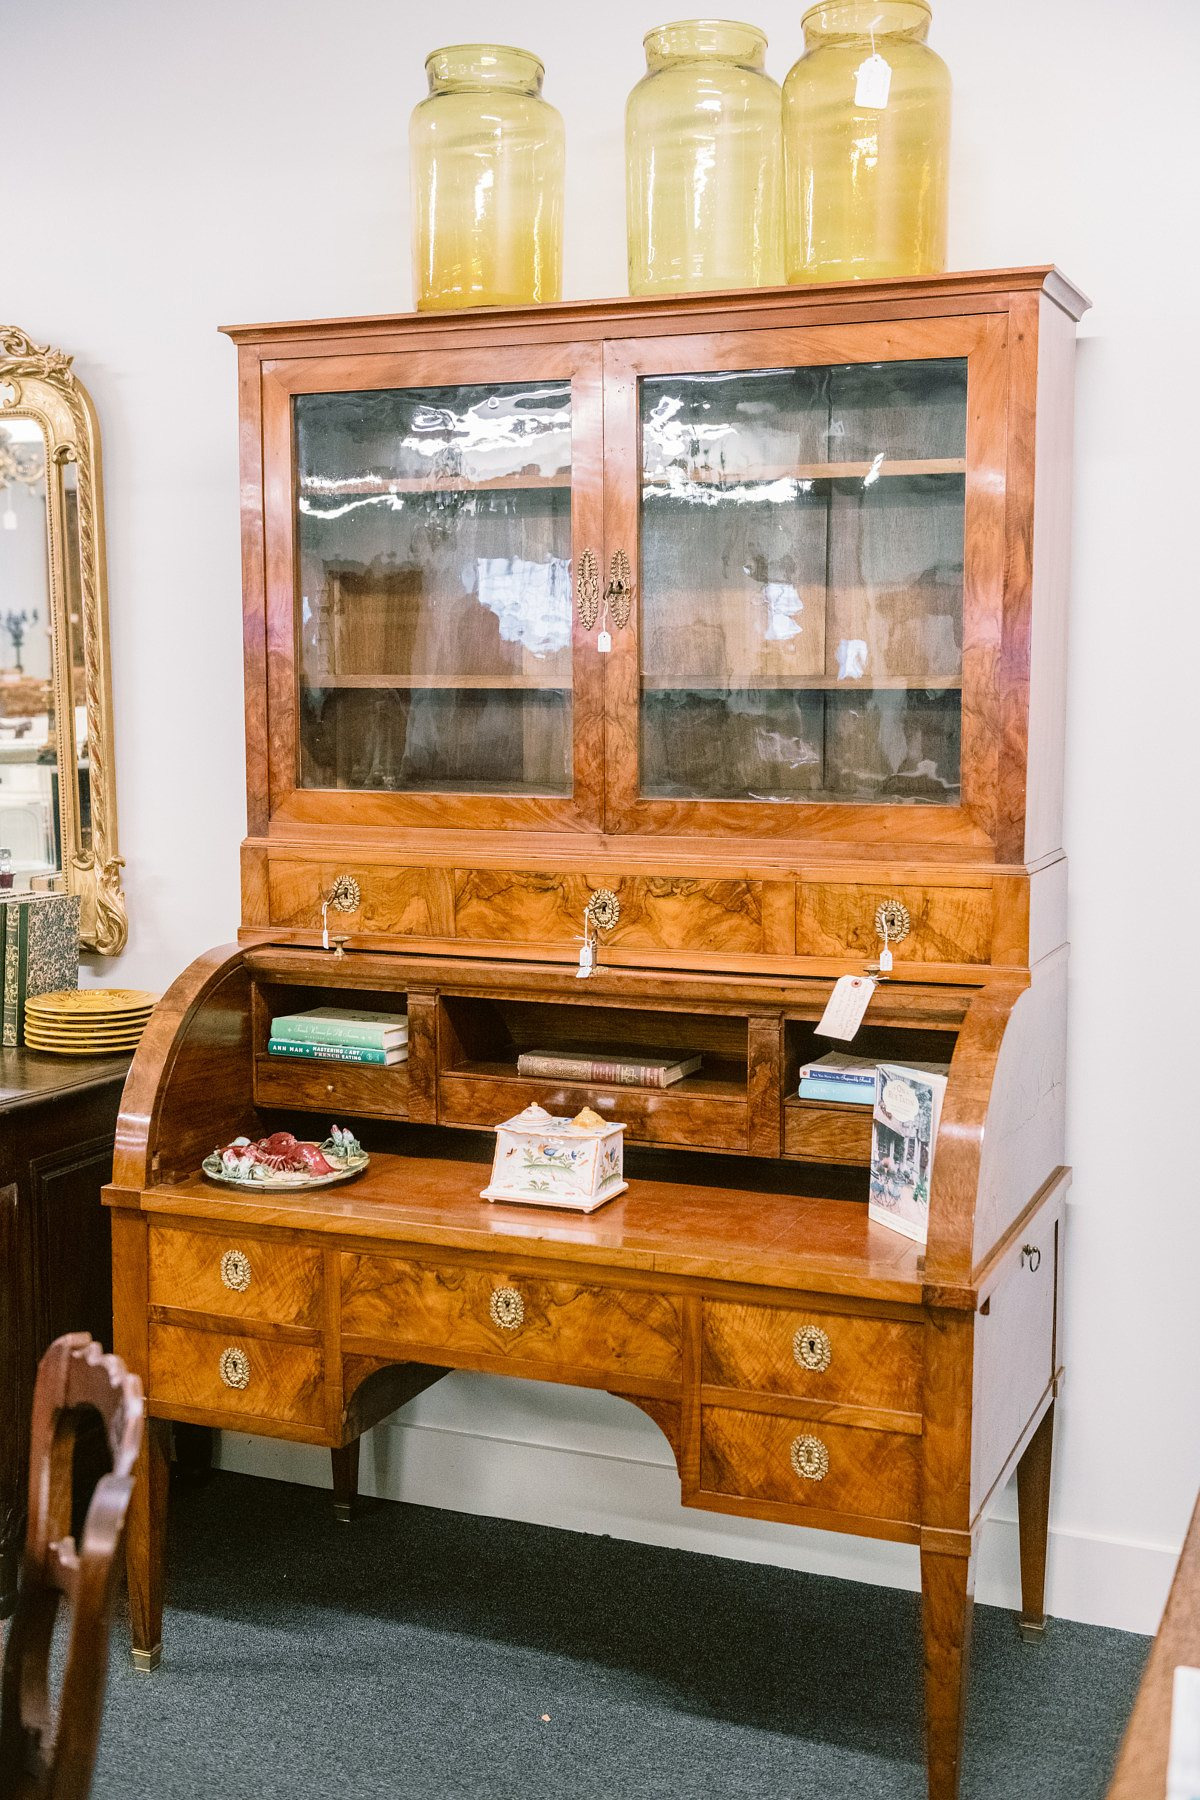 Antique Furniture Makers List Lovely How to Shop for Antique Furniture for Your Home